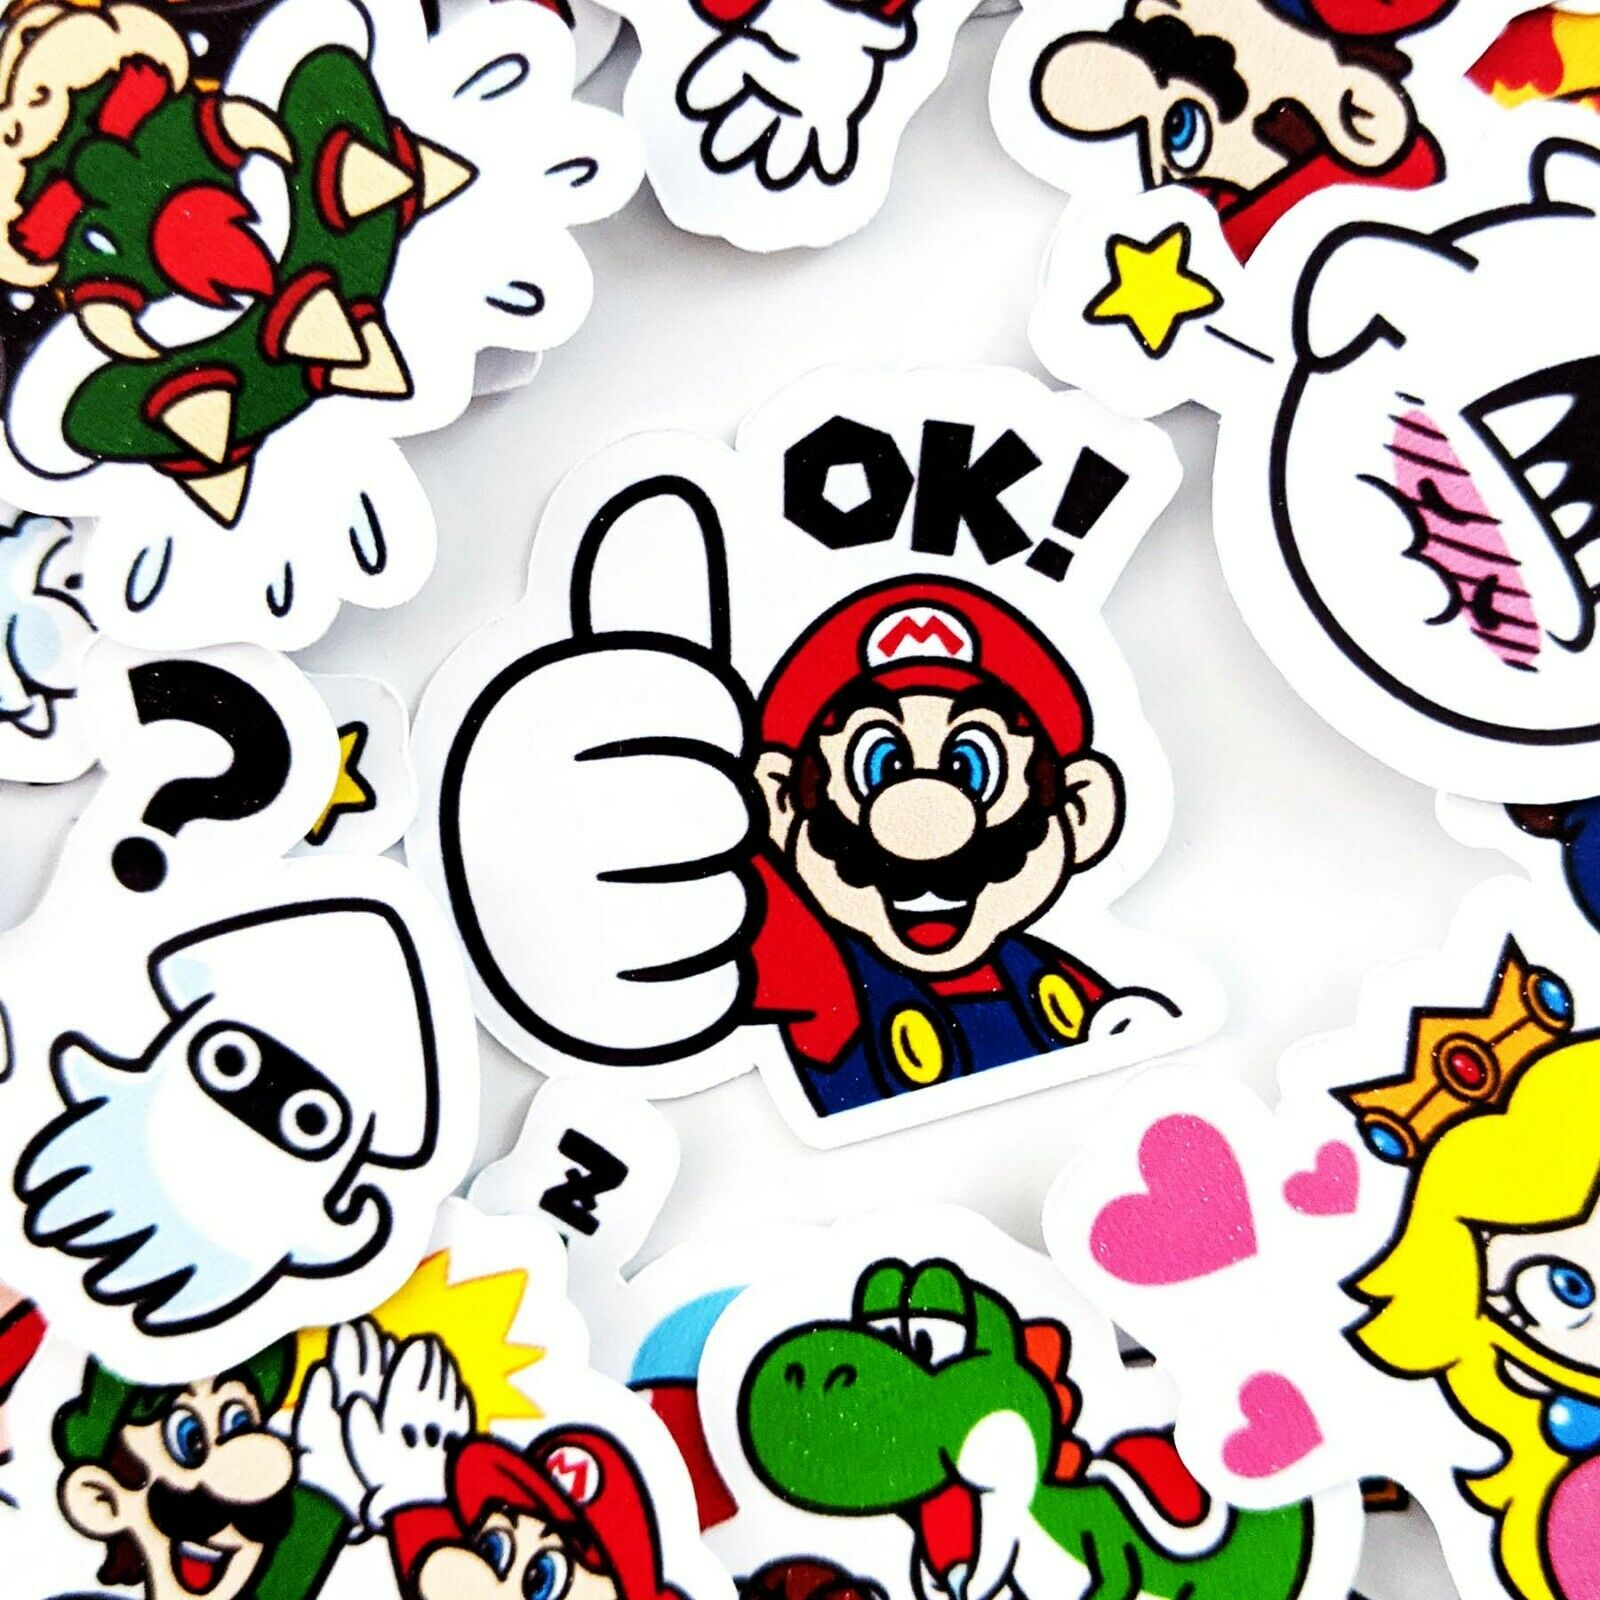 Home Decoration - 40 Super Mario Stickers, Journal Stickers, Diary Stickers, Scrapbooking [USA]